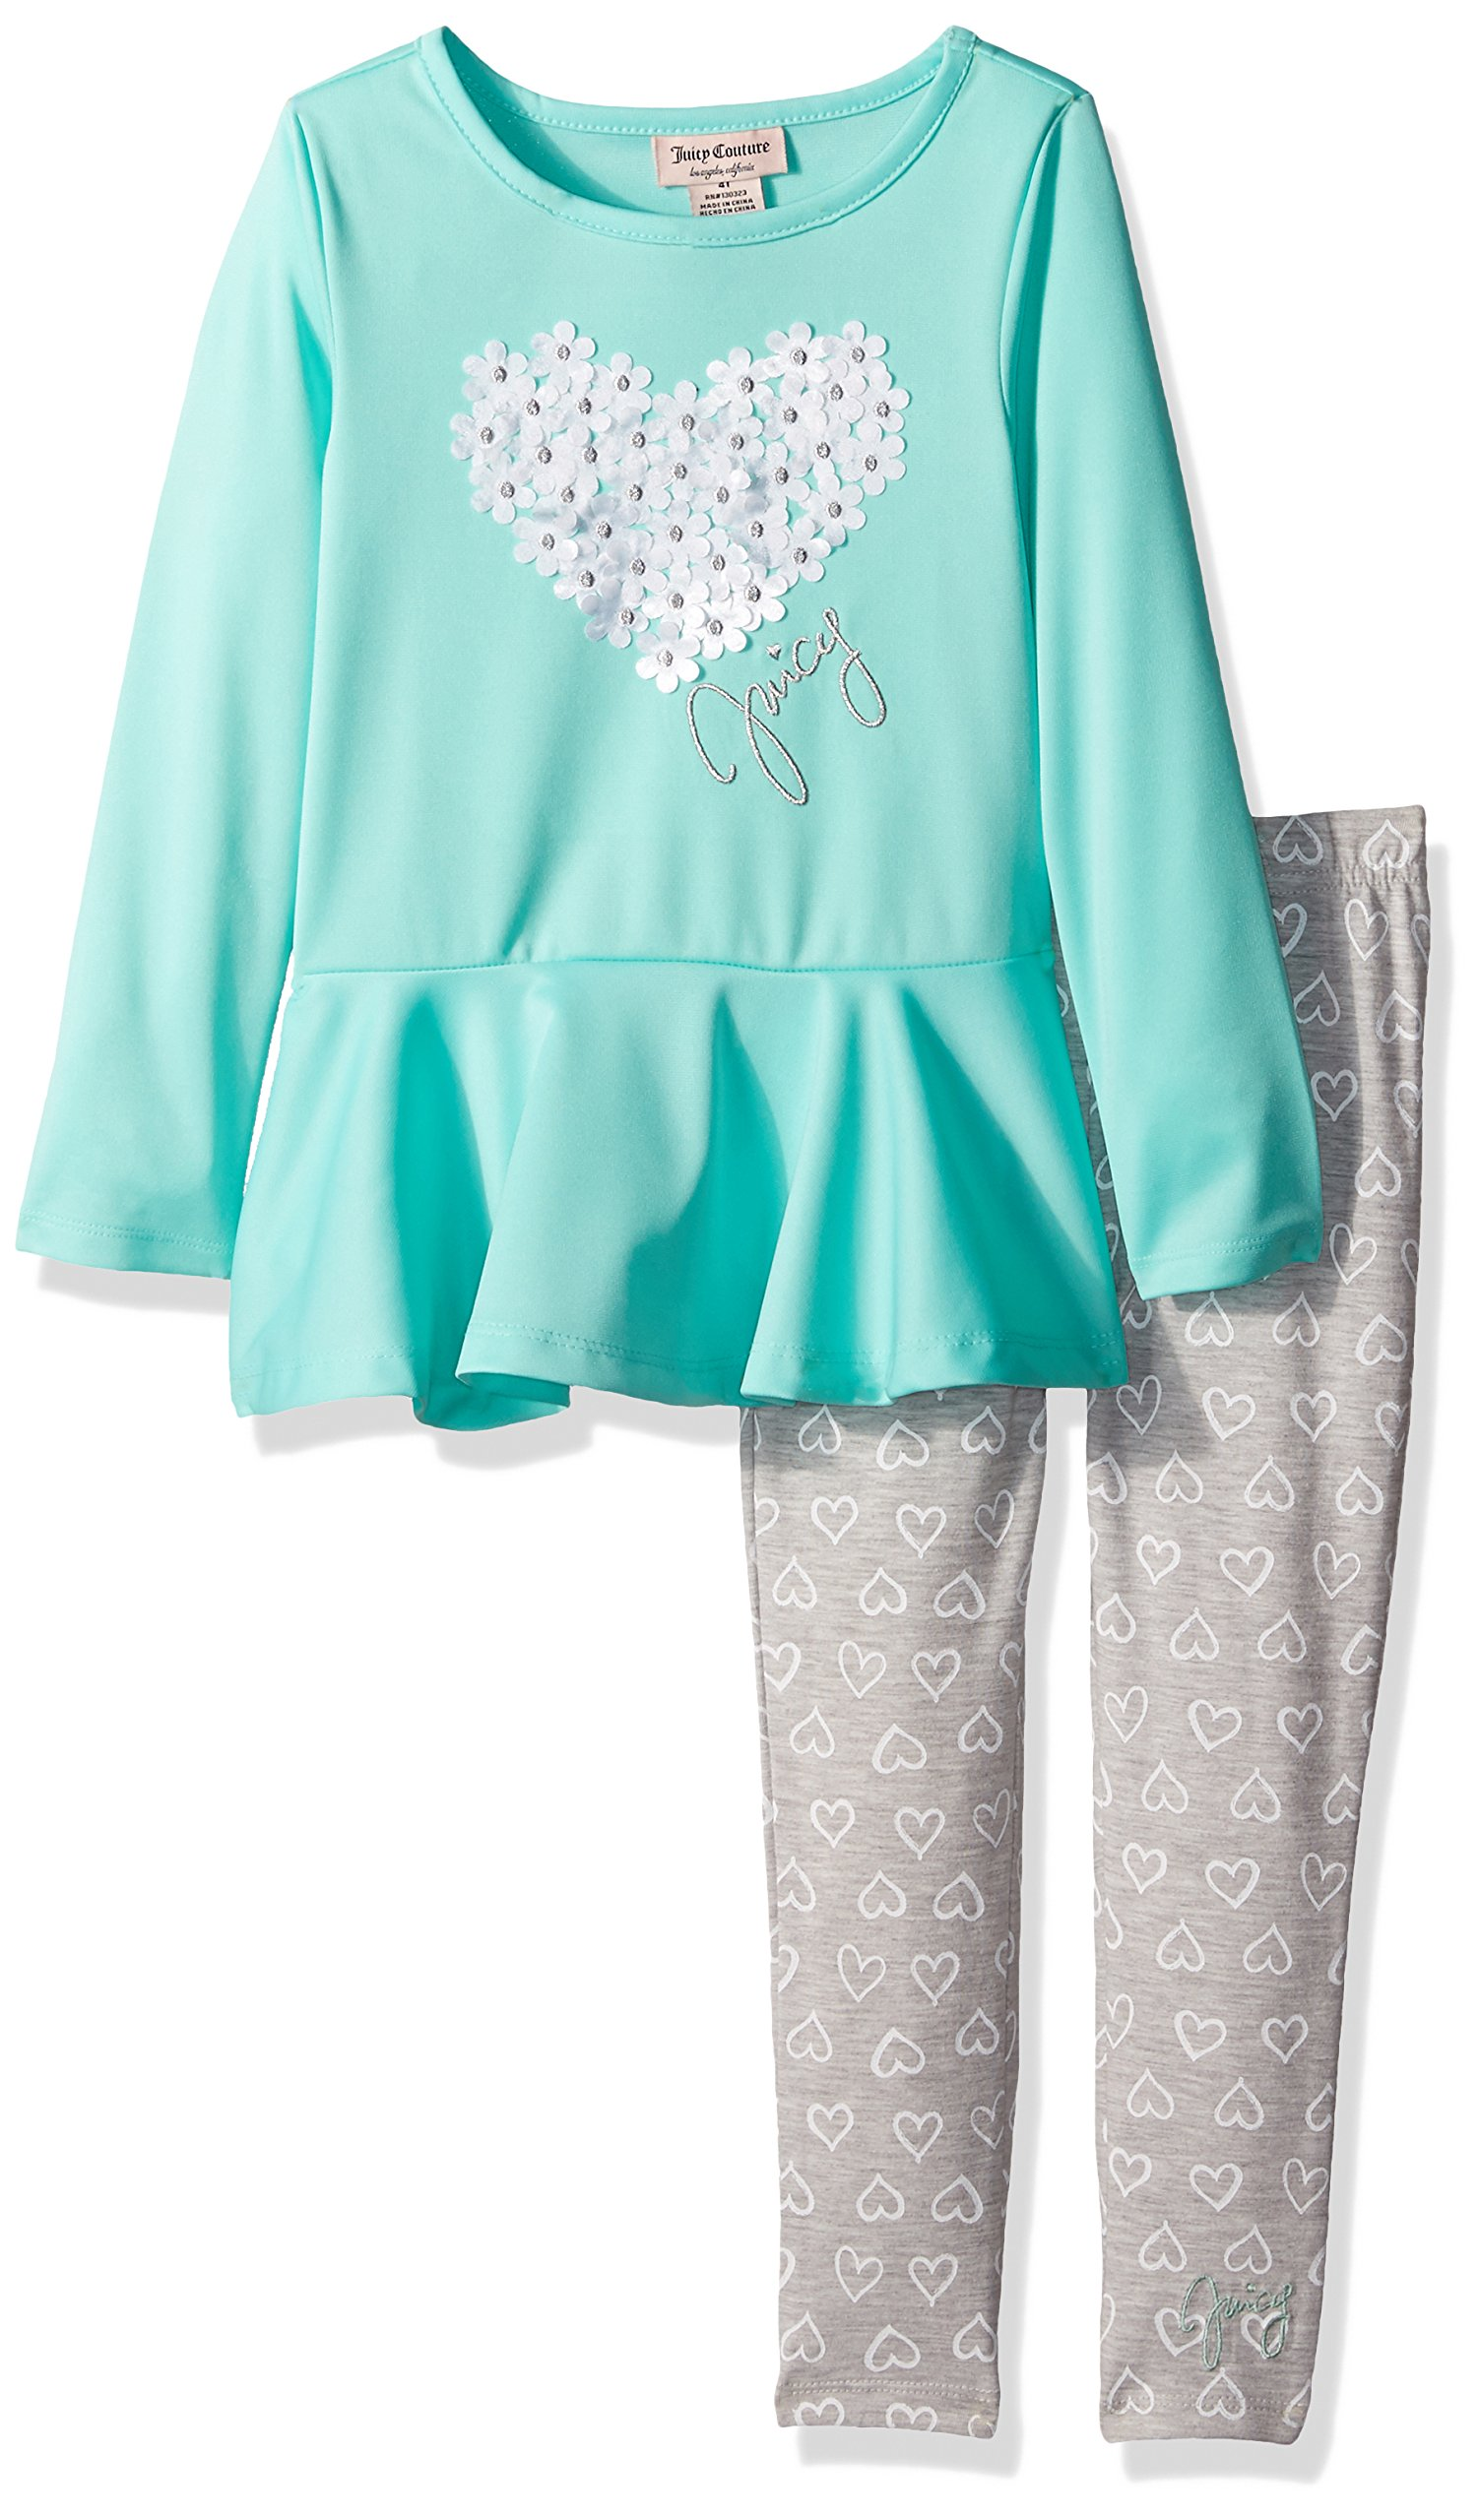 Juicy Couture Little Girls' Toddler 2 Piece Pant Set, Green, 3T